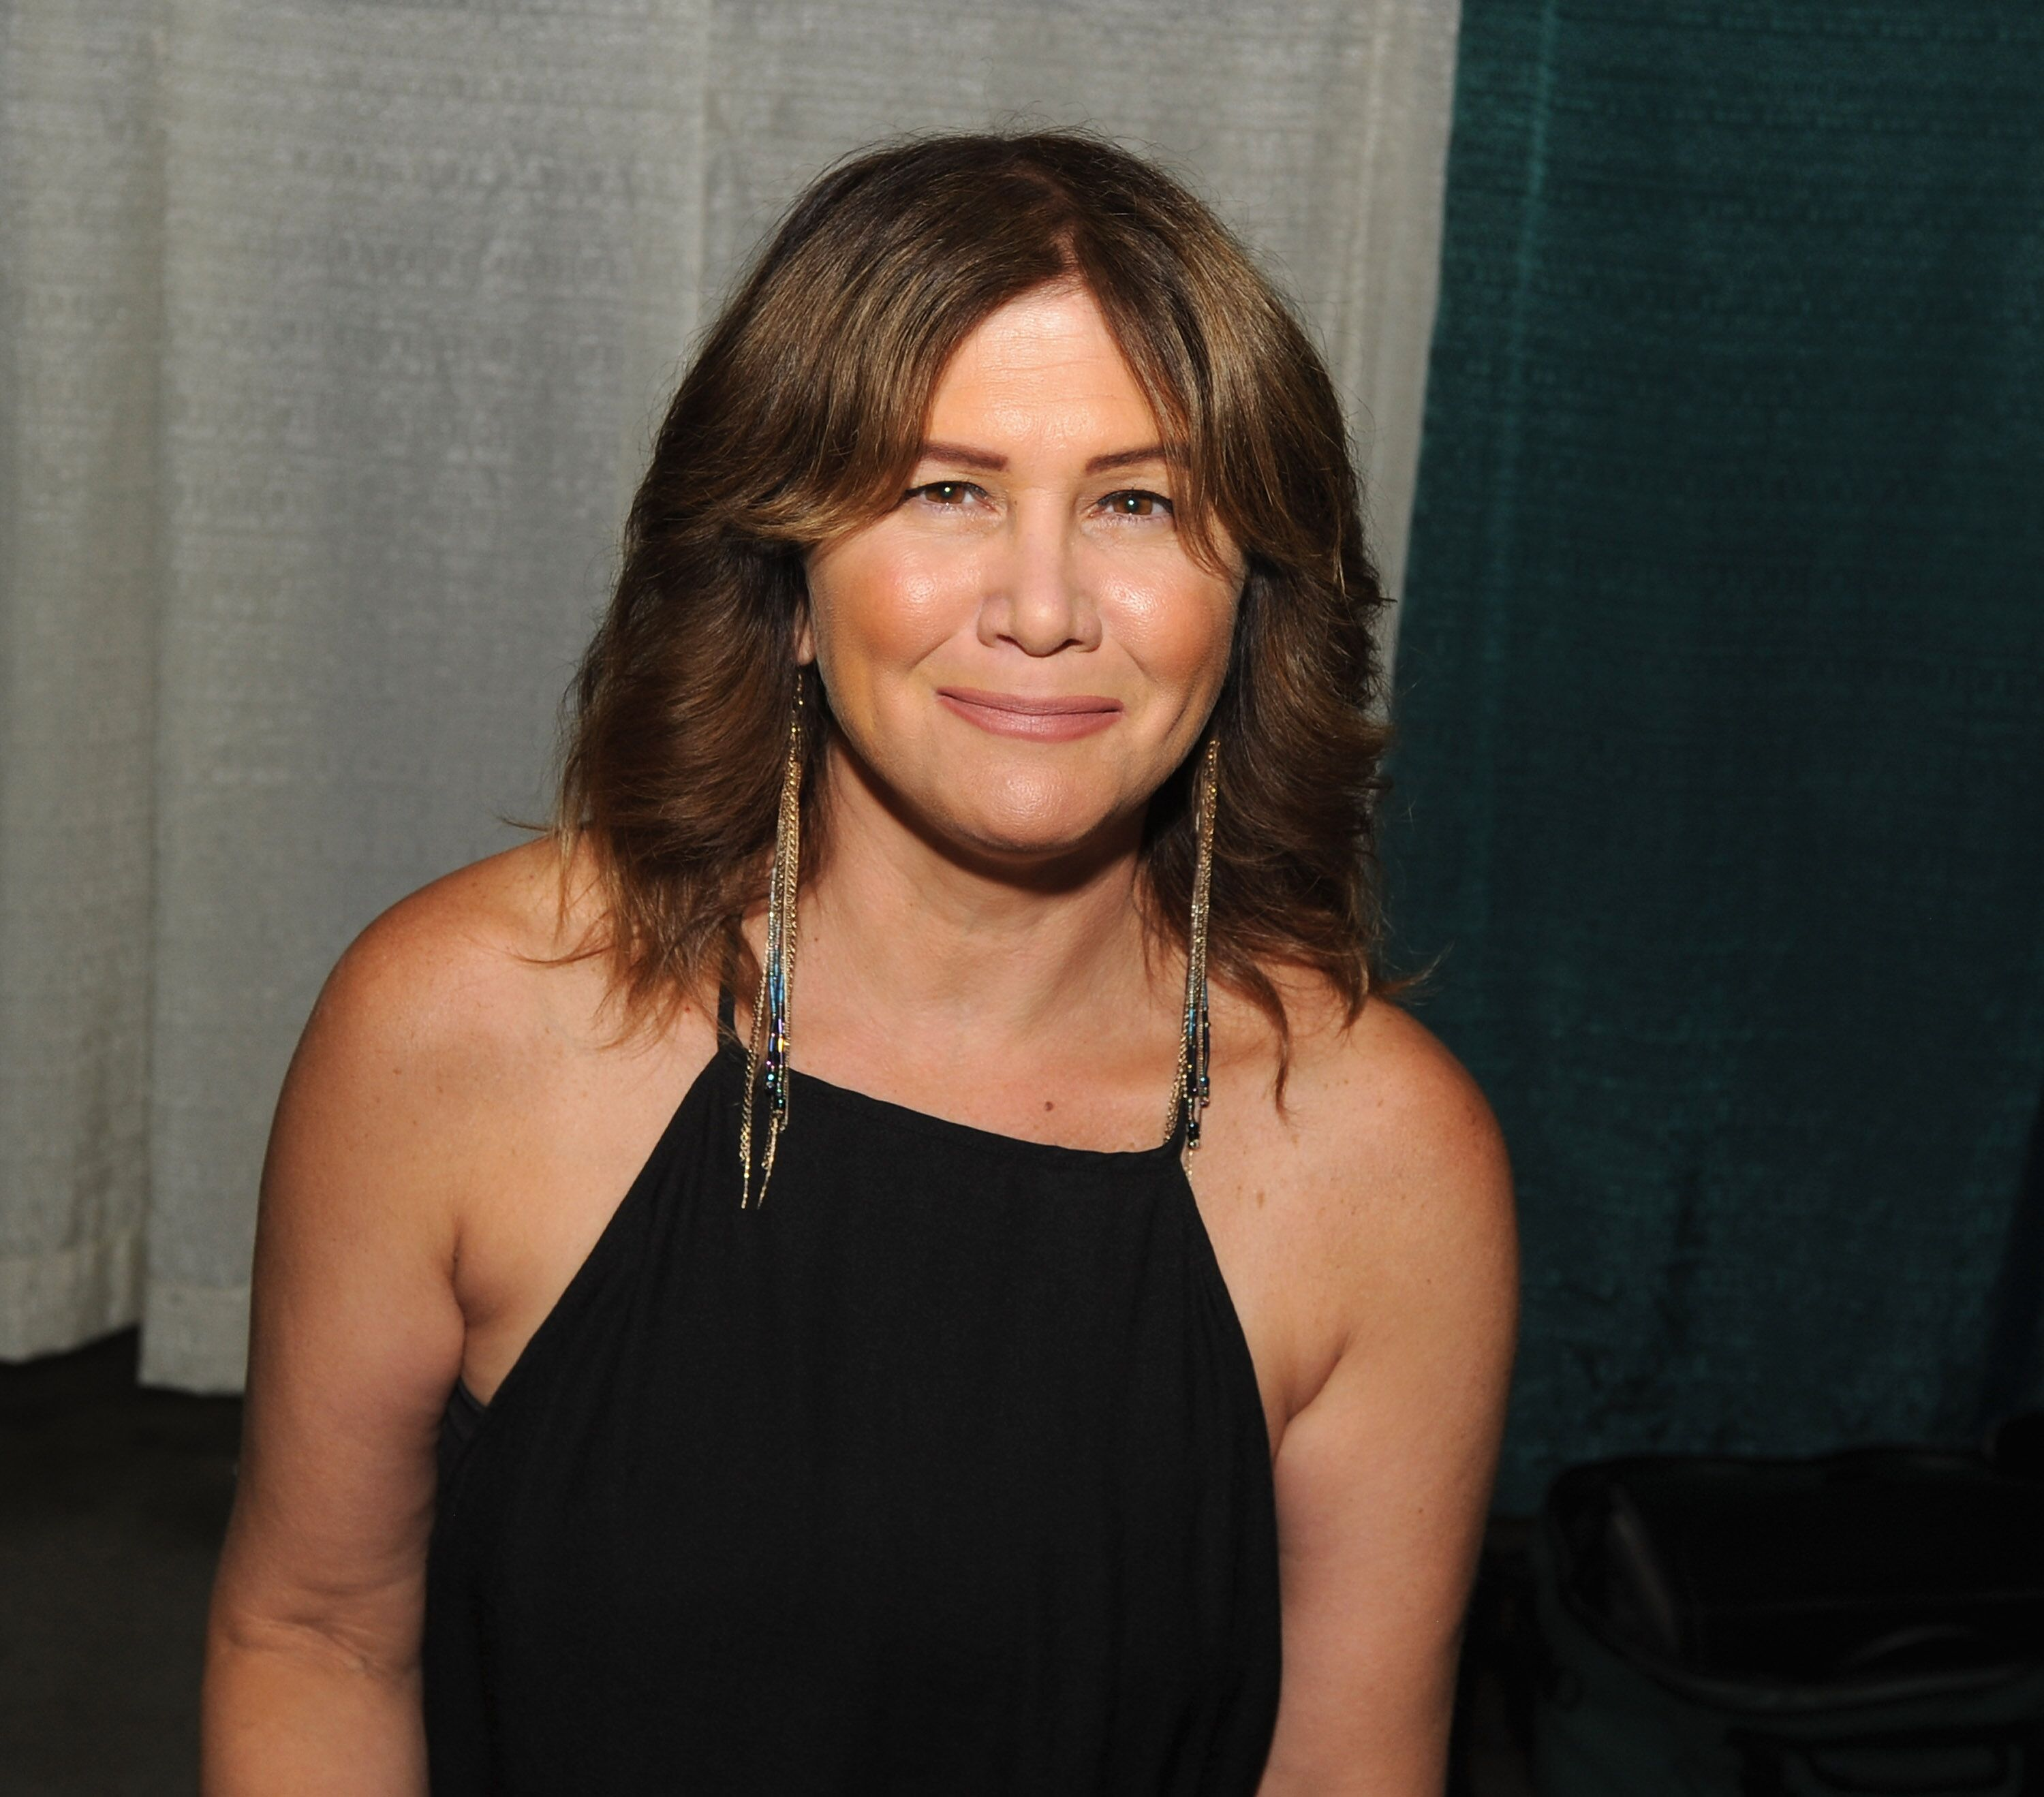 Tracey Gold at the 2018 STL Pop Culture Con in St Charles, Missouri | Source: Getty Images